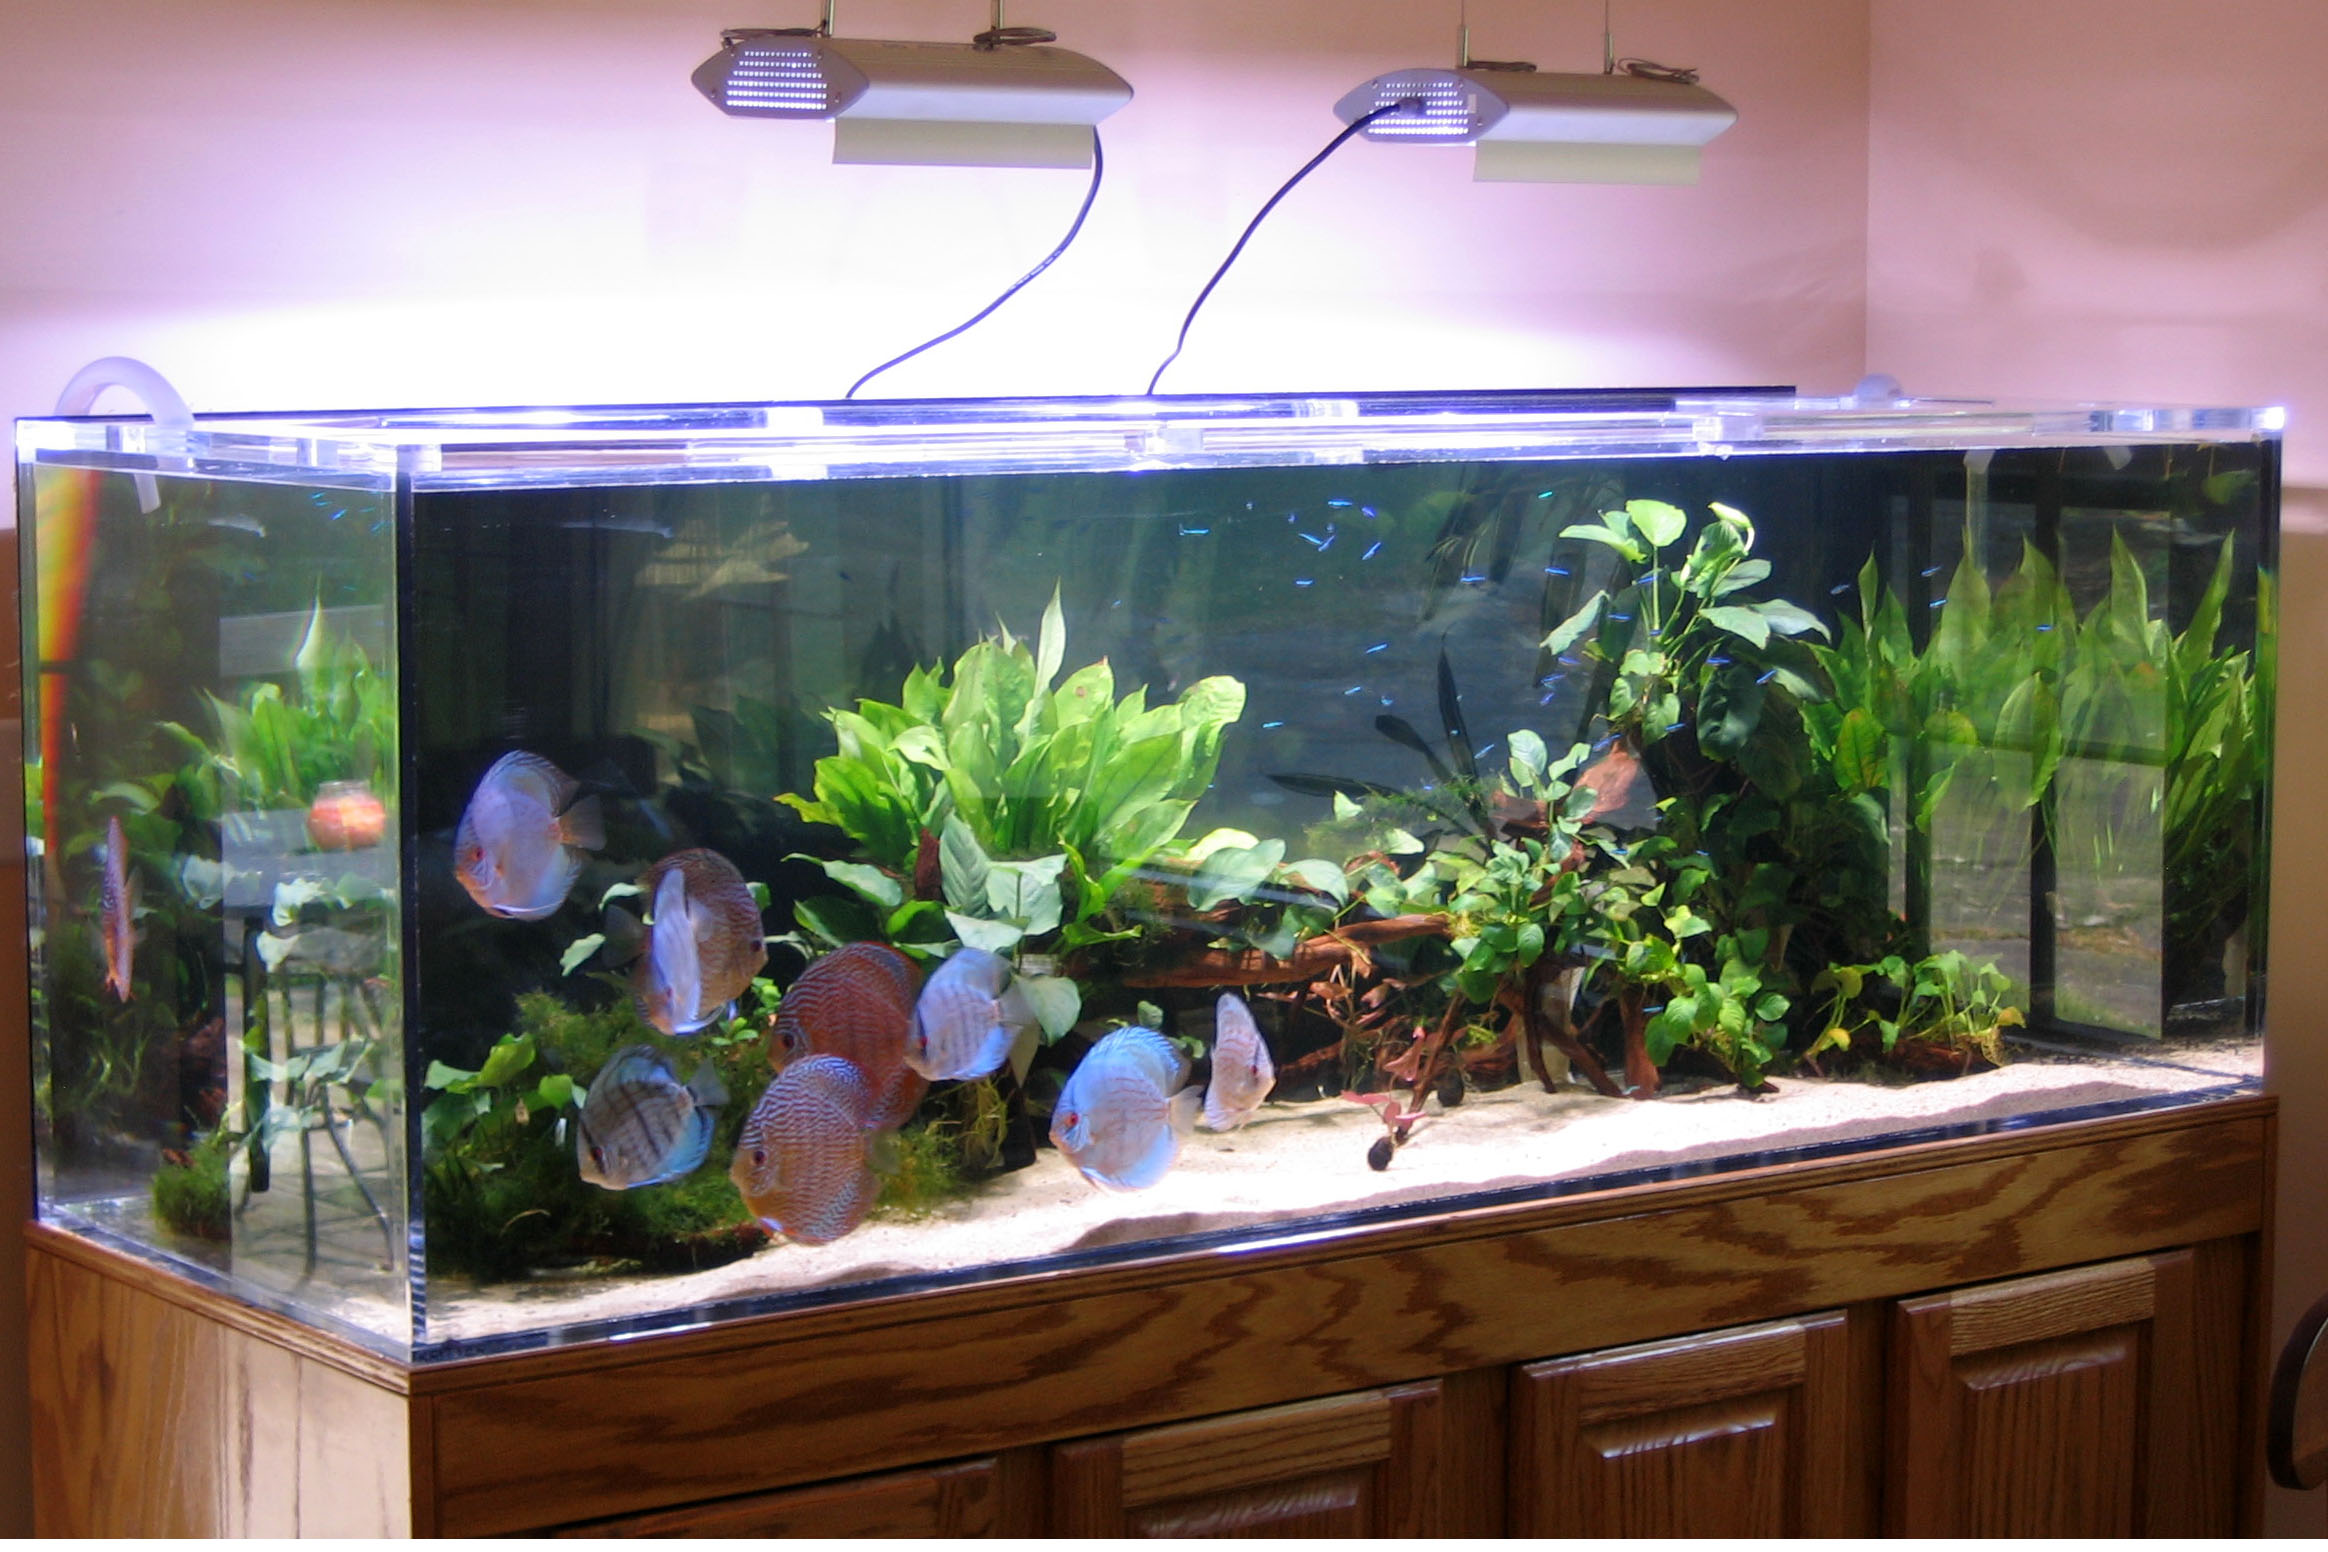 Fish aquarium price in pakistan - Discus Aquarium